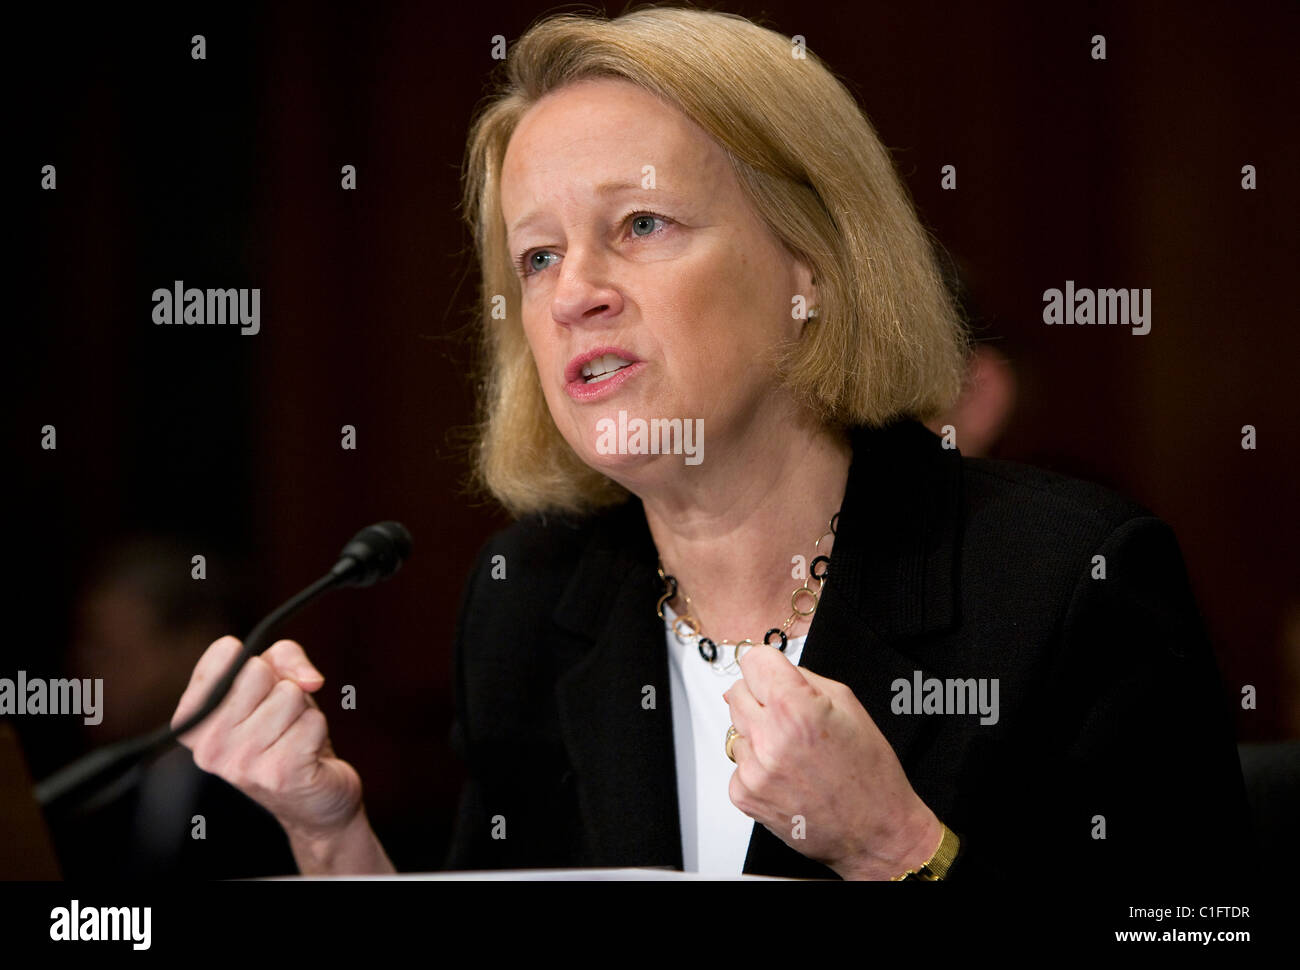 Mary Schapiro, Chairwoman of the Securities and Exchange Commission (SEC) - Stock Image